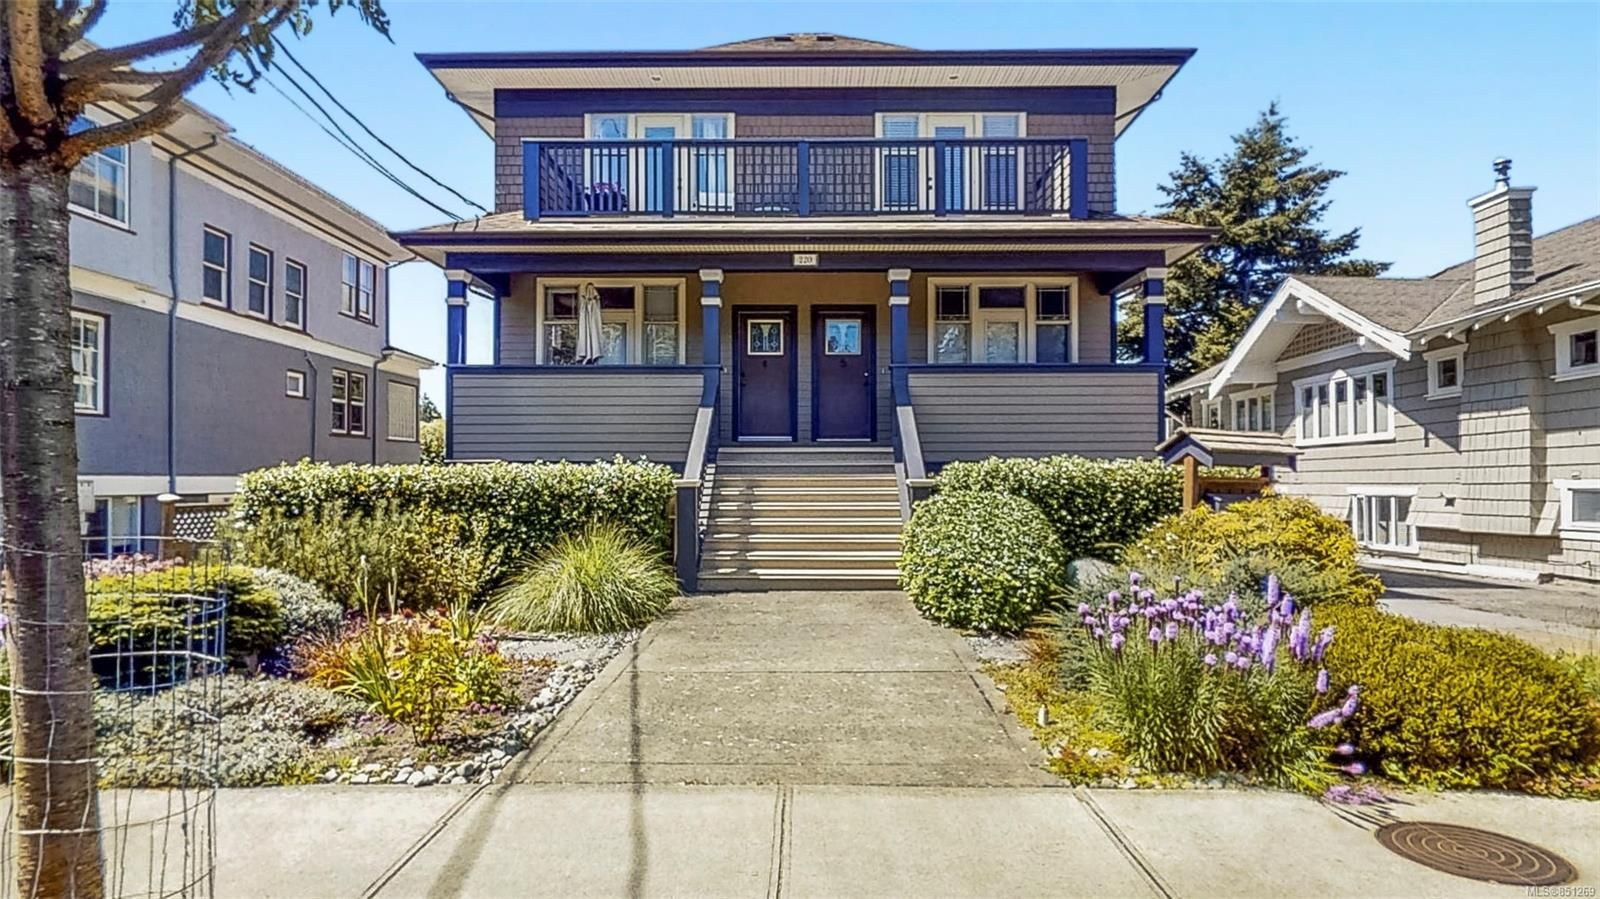 Main Photo: 1 220 Moss St in : Vi Fairfield West Row/Townhouse for sale (Victoria)  : MLS®# 851269